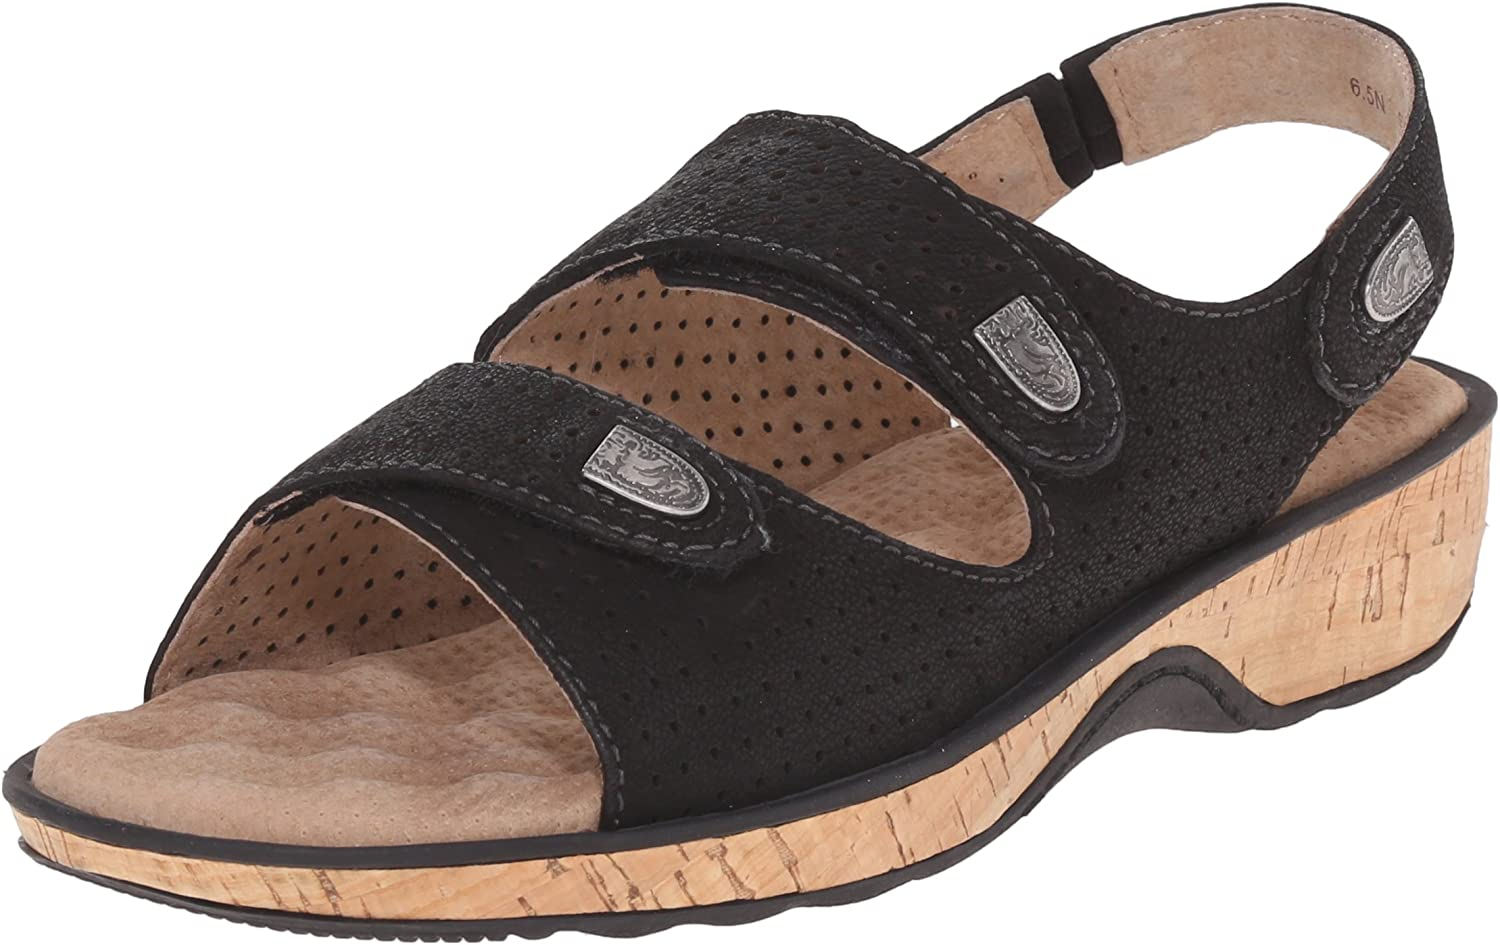 SoftWalk Women's Bolivia Wedge Sandal